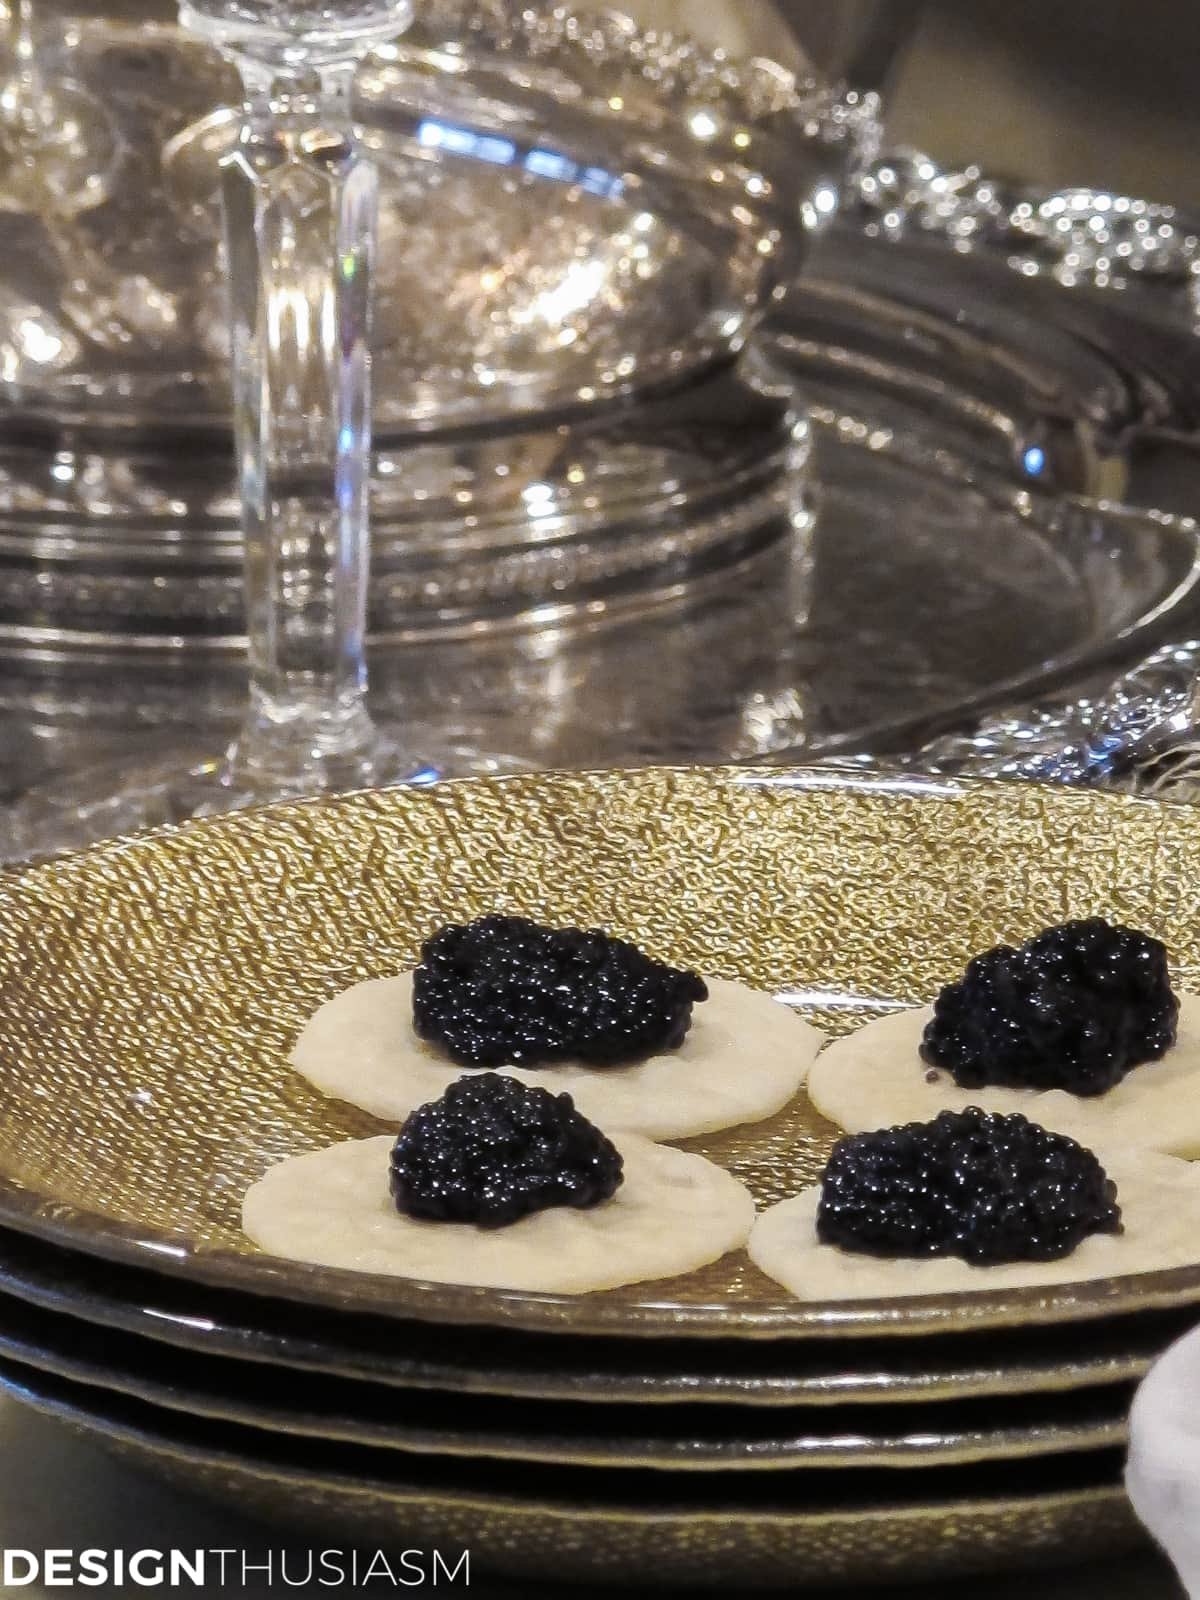 ideas for new years eve serving bar with caviar on gold plates